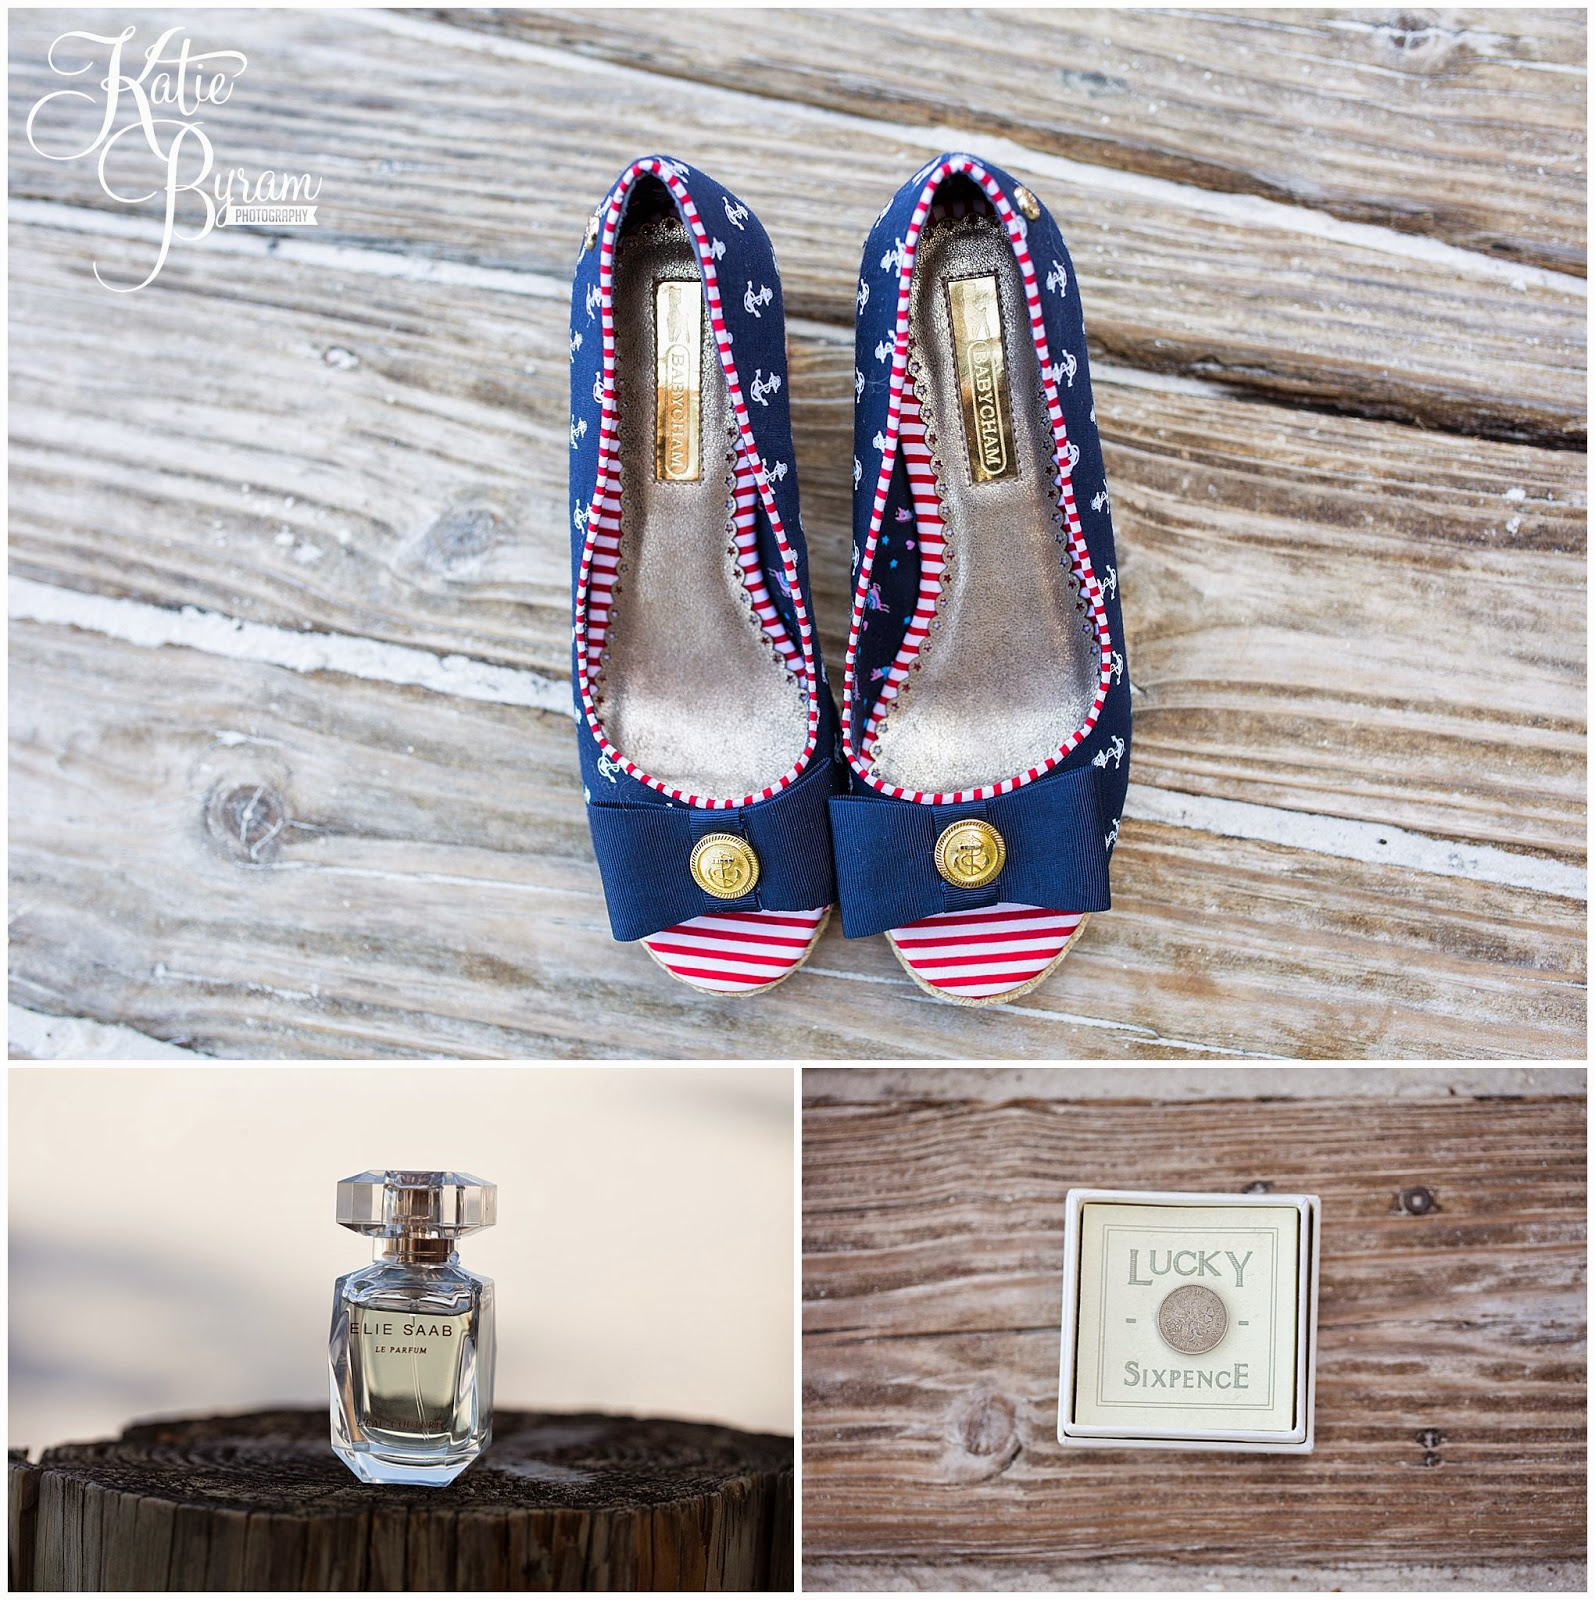 beach wedding shoes, nautical wedding, destination wedding, clearwater beach wedding, hilton clearwater beach wedding, katie byram photography, florida wedding